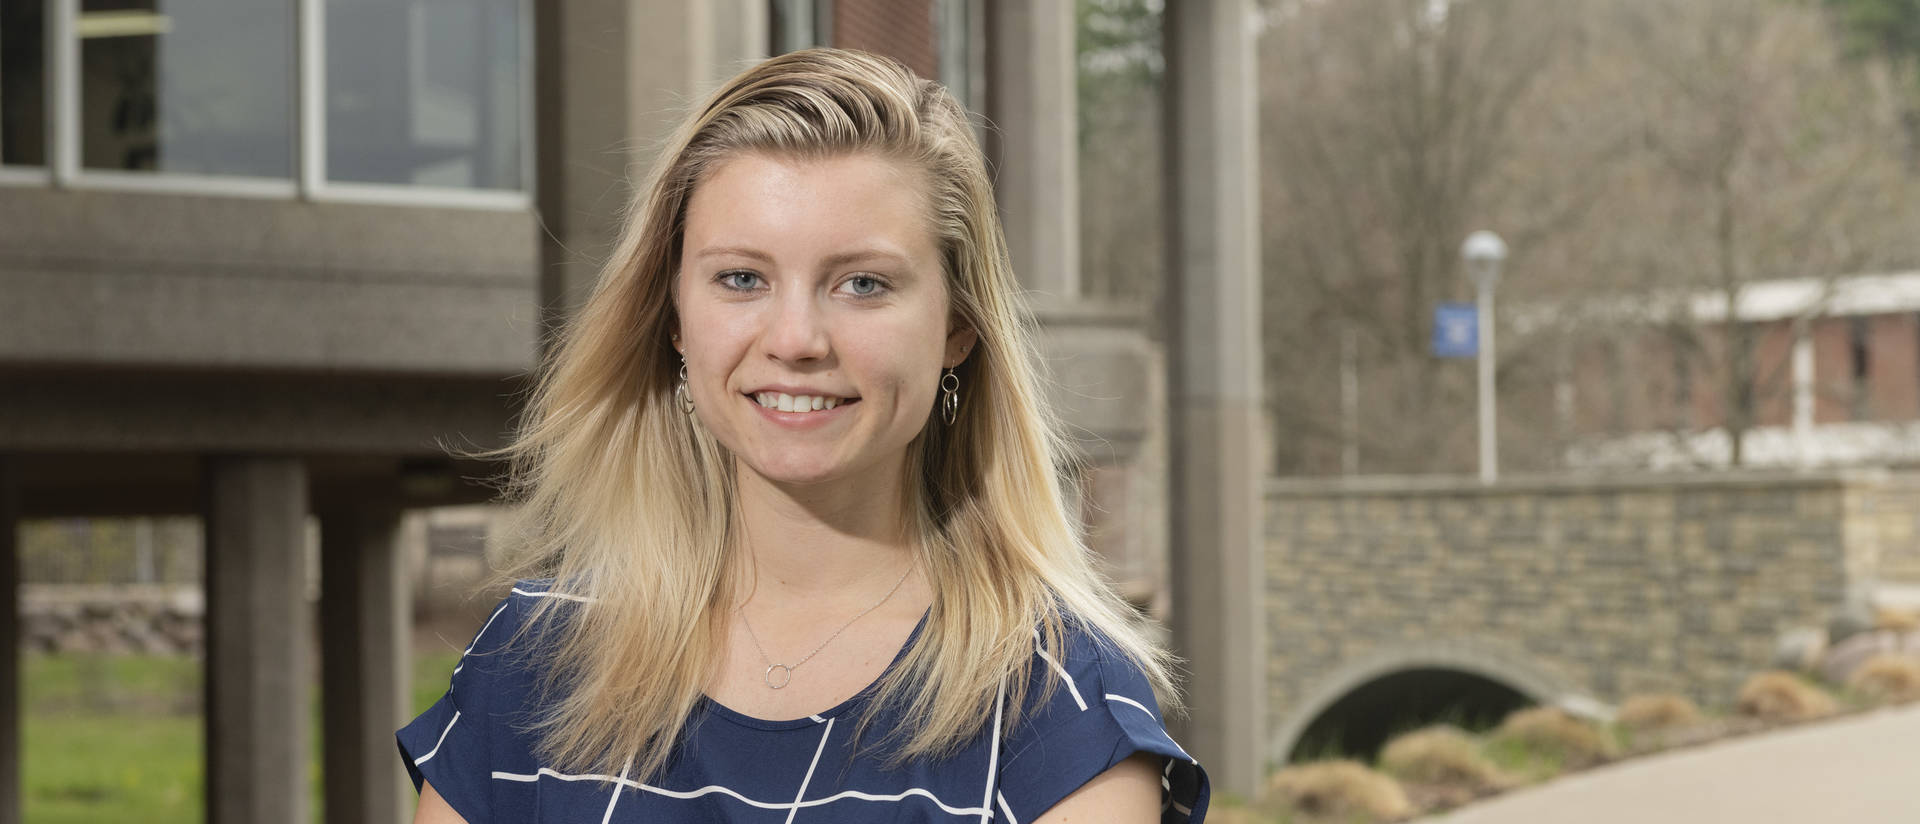 Jesselyn Nadolny, a junior with a major in Spanish teaching and a minor in history teaching, has won a national Honors fellowship award that will fund her newest research project, which builds on work she has already completed as a Blugold Fellow.